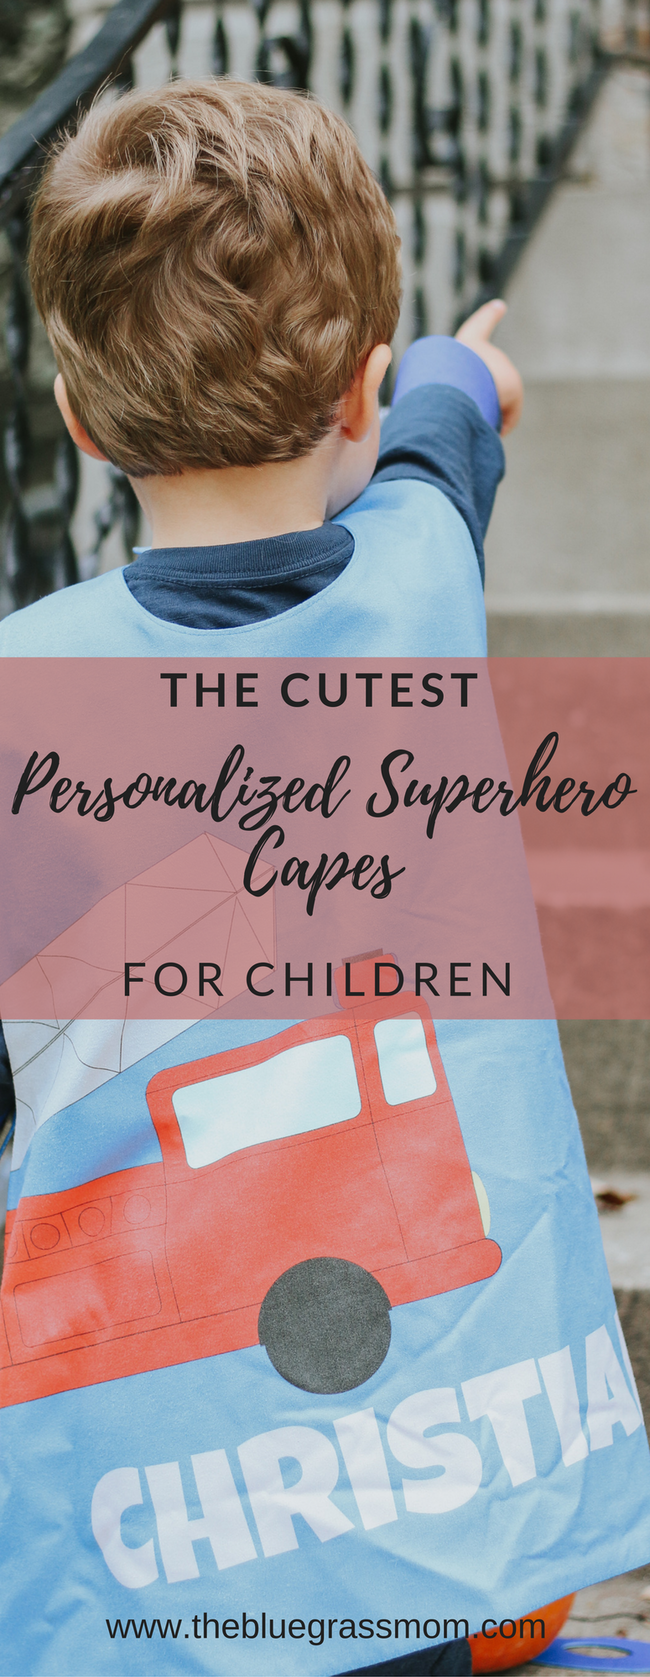 Shop with a Purpose: Personalized Superhero Capes for Children